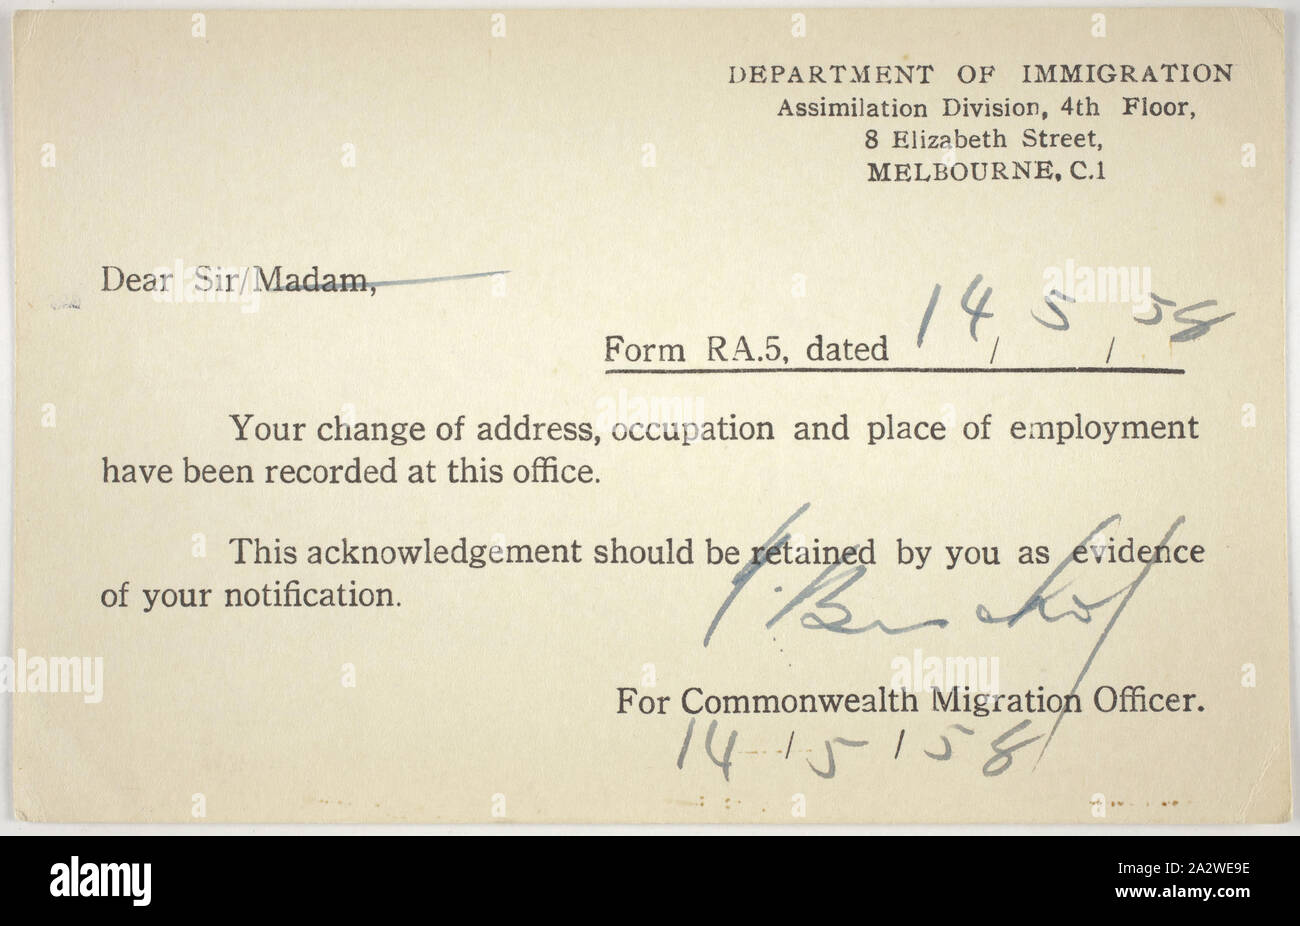 Card - Change of Address, Department of Immigration, 14 May 1958, Card issued by the Department of Immigration, dated 14 May 1958. It acknowledges notification of change of address, occupation and place of employment, it was issued to Bretislav Lukes. The reverse side of the card records Bretislav's address as 48 Pennell Ave St Albans. Born 12 January 1922 in Stankou in Czechoslovakia, Bretislav migrated to Australia on the Goya in 1950 and was sent to Stock Photo